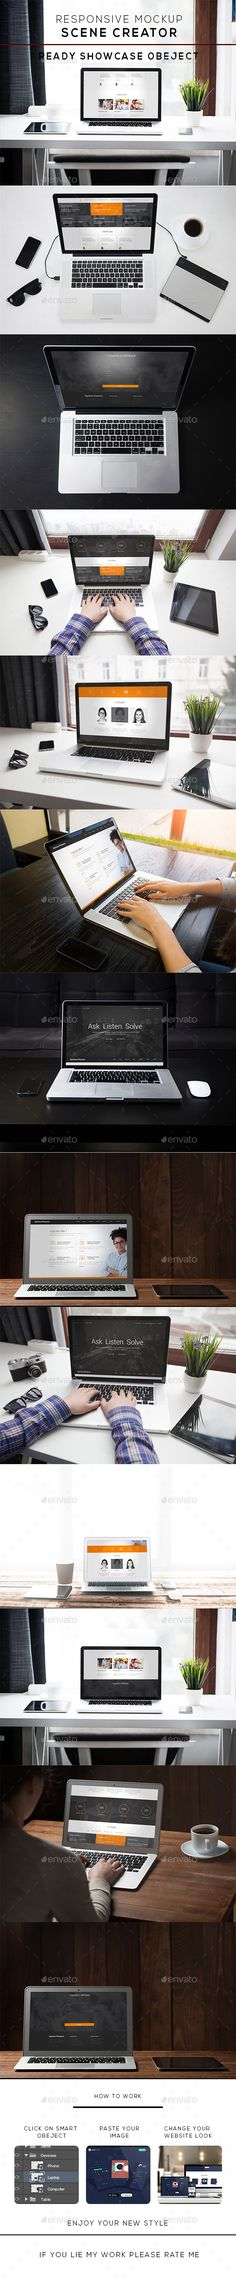 Realistic Laptop Mockup - Displays #Product #Mock-Ups Download here: https://graphicriver.net/item/realistic-laptop-mockup/19543497?ref=alena994